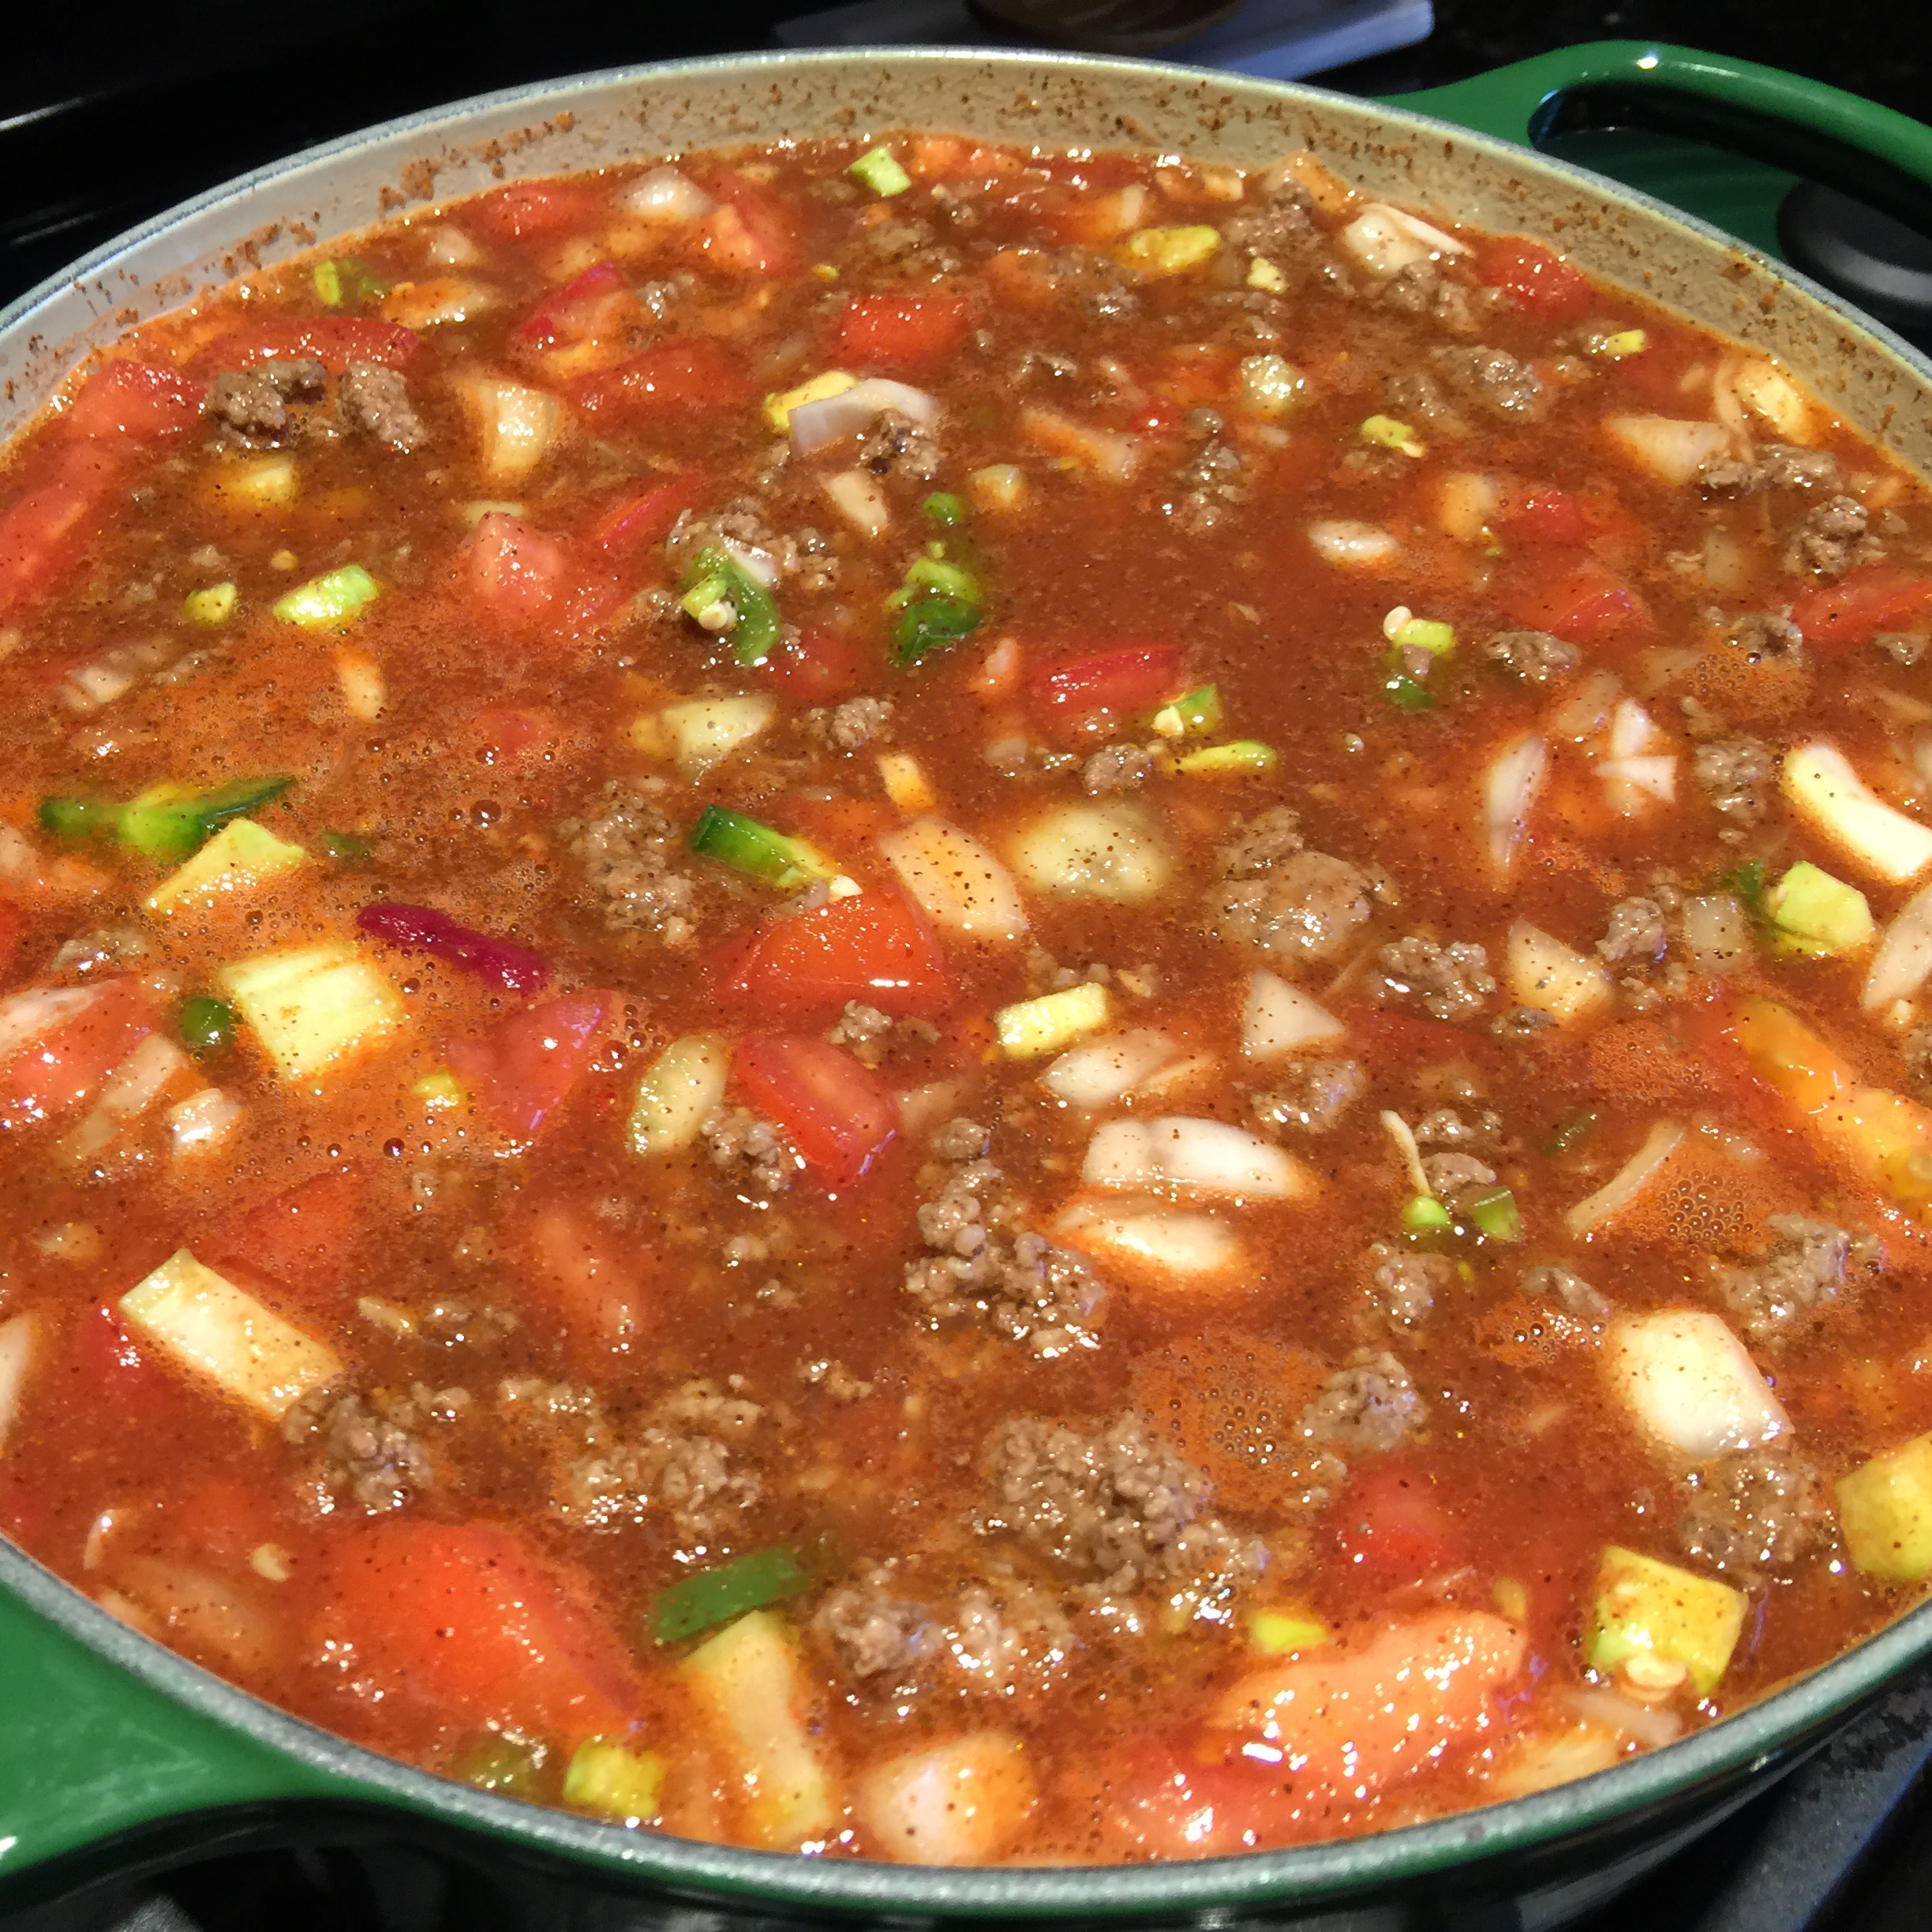 Stir the chili pot together and turn the heat up to medium